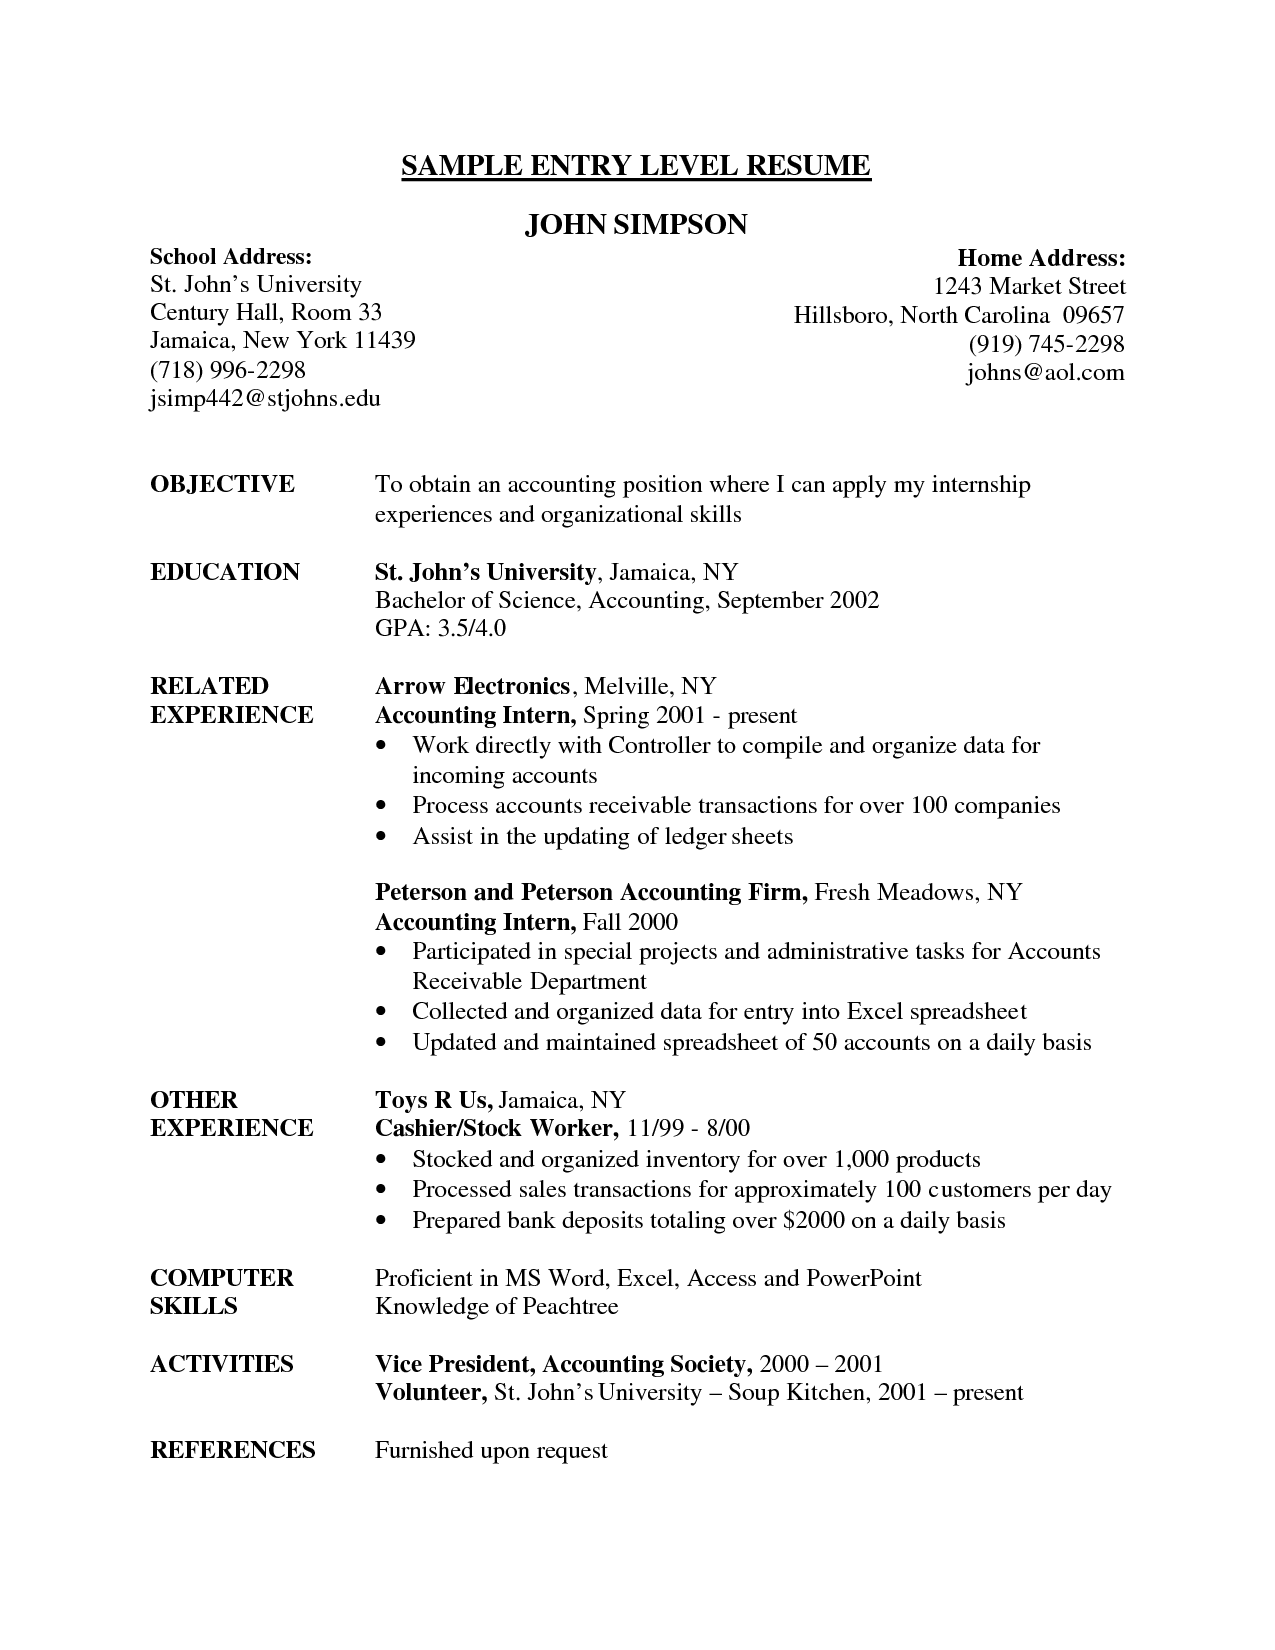 example of resume profile entry level resumecareer career · example of resume profile